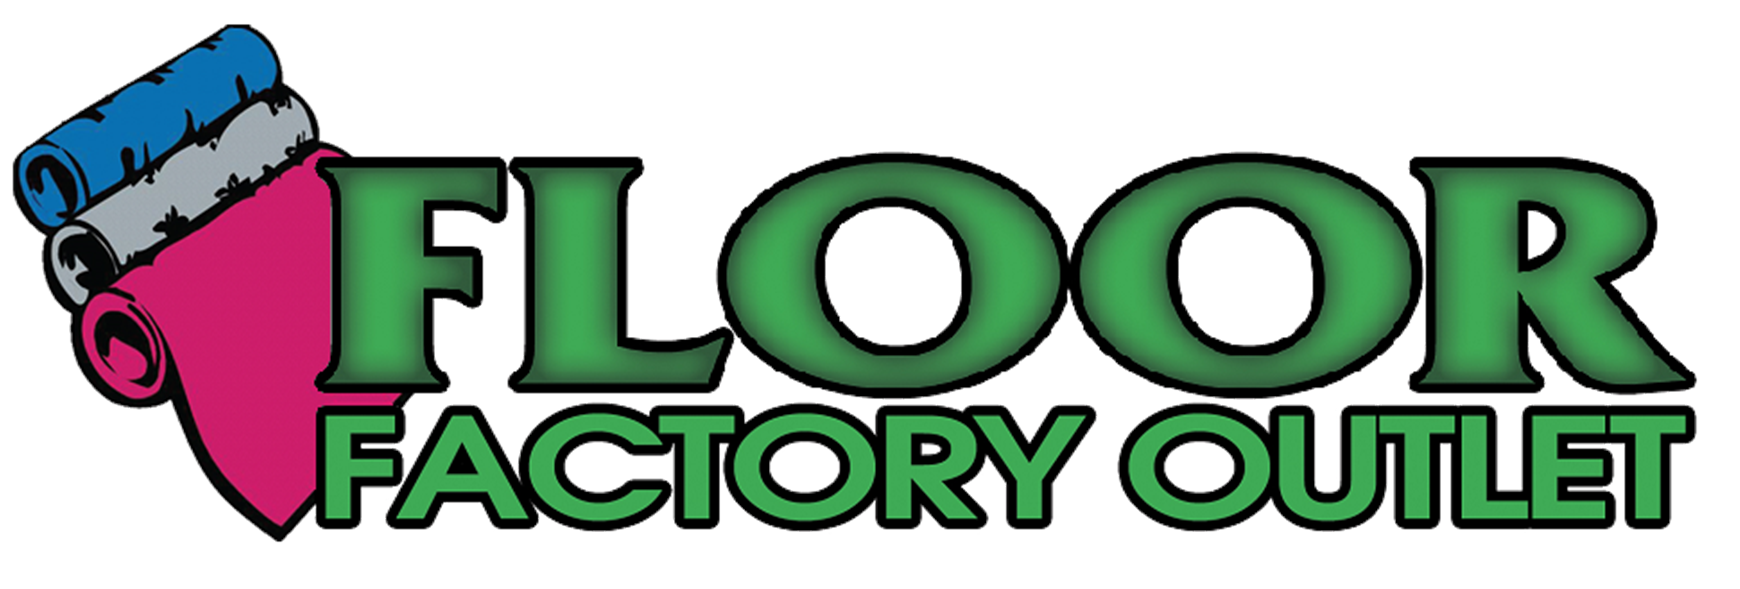 Floor Factory Outlet - 4030 S Ridgewood Ave, Port Orange, FL 32127